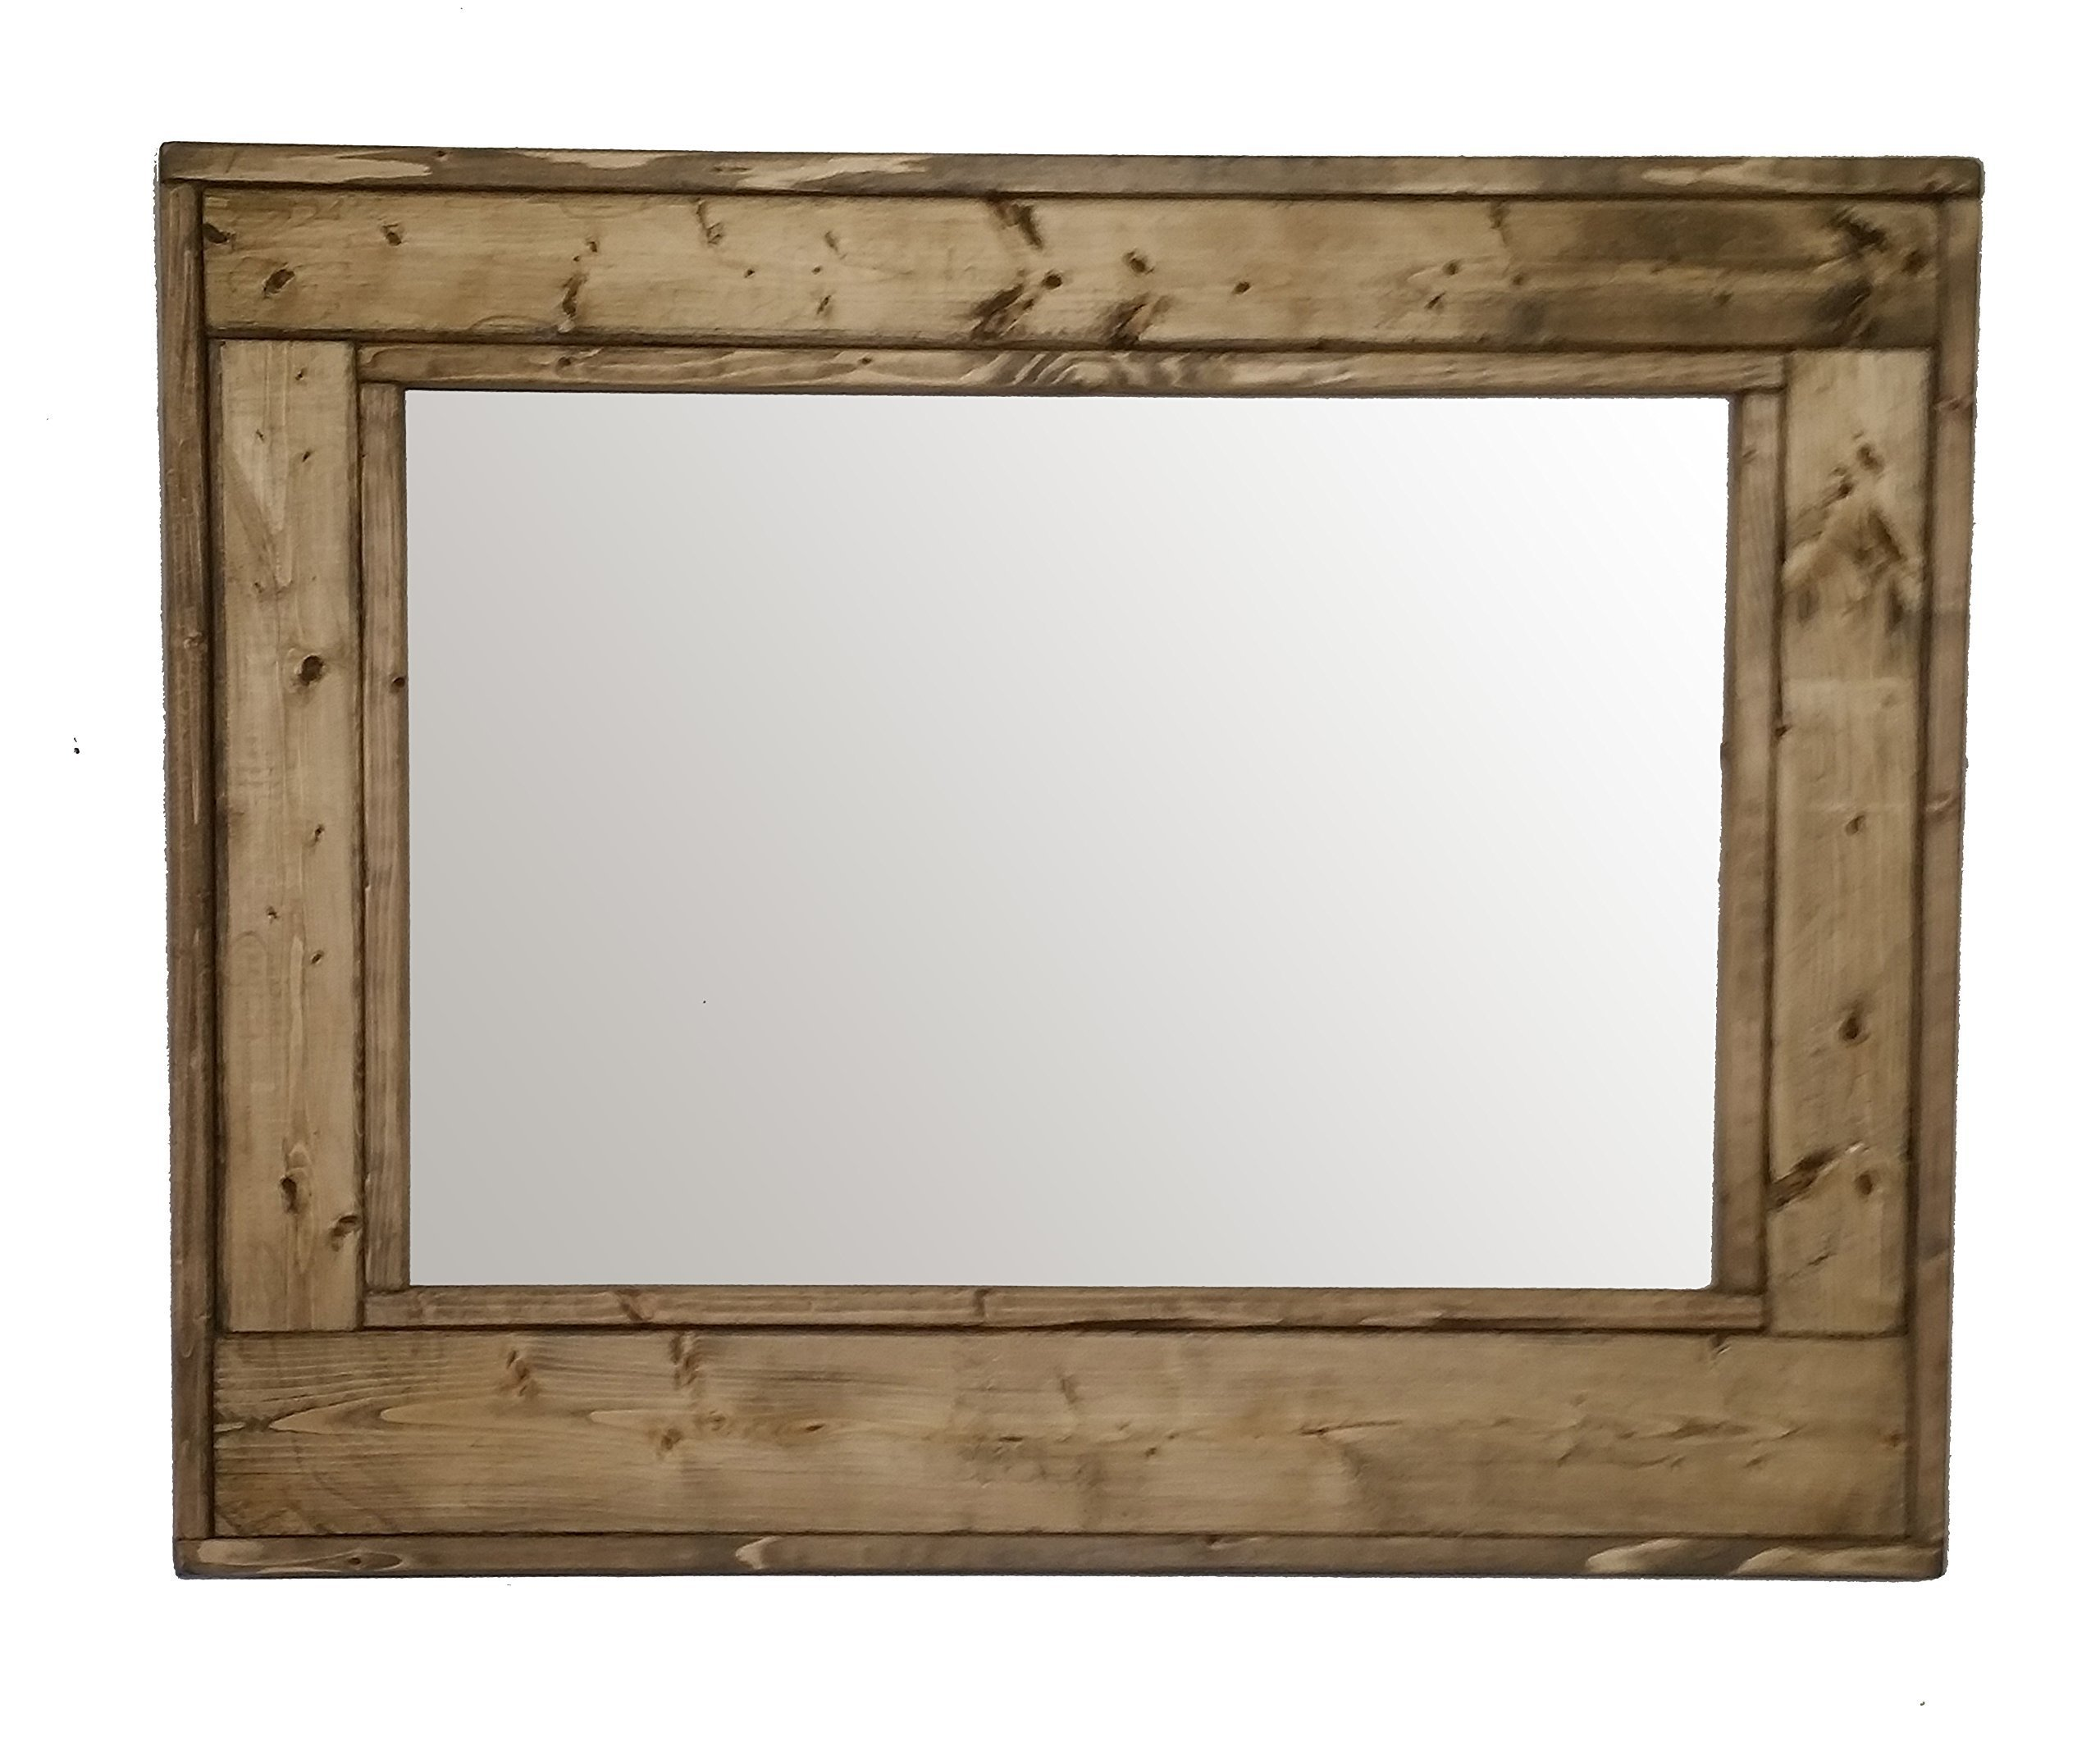 Herringbone 30 x 24 Horizontal Framed Mirror Stained in Driftwood - Reclaimed Wood Mirror - Large Wall Mirror - Rustic Modern Home - Home Decor - Mirror - Housewares by Renewed Decor